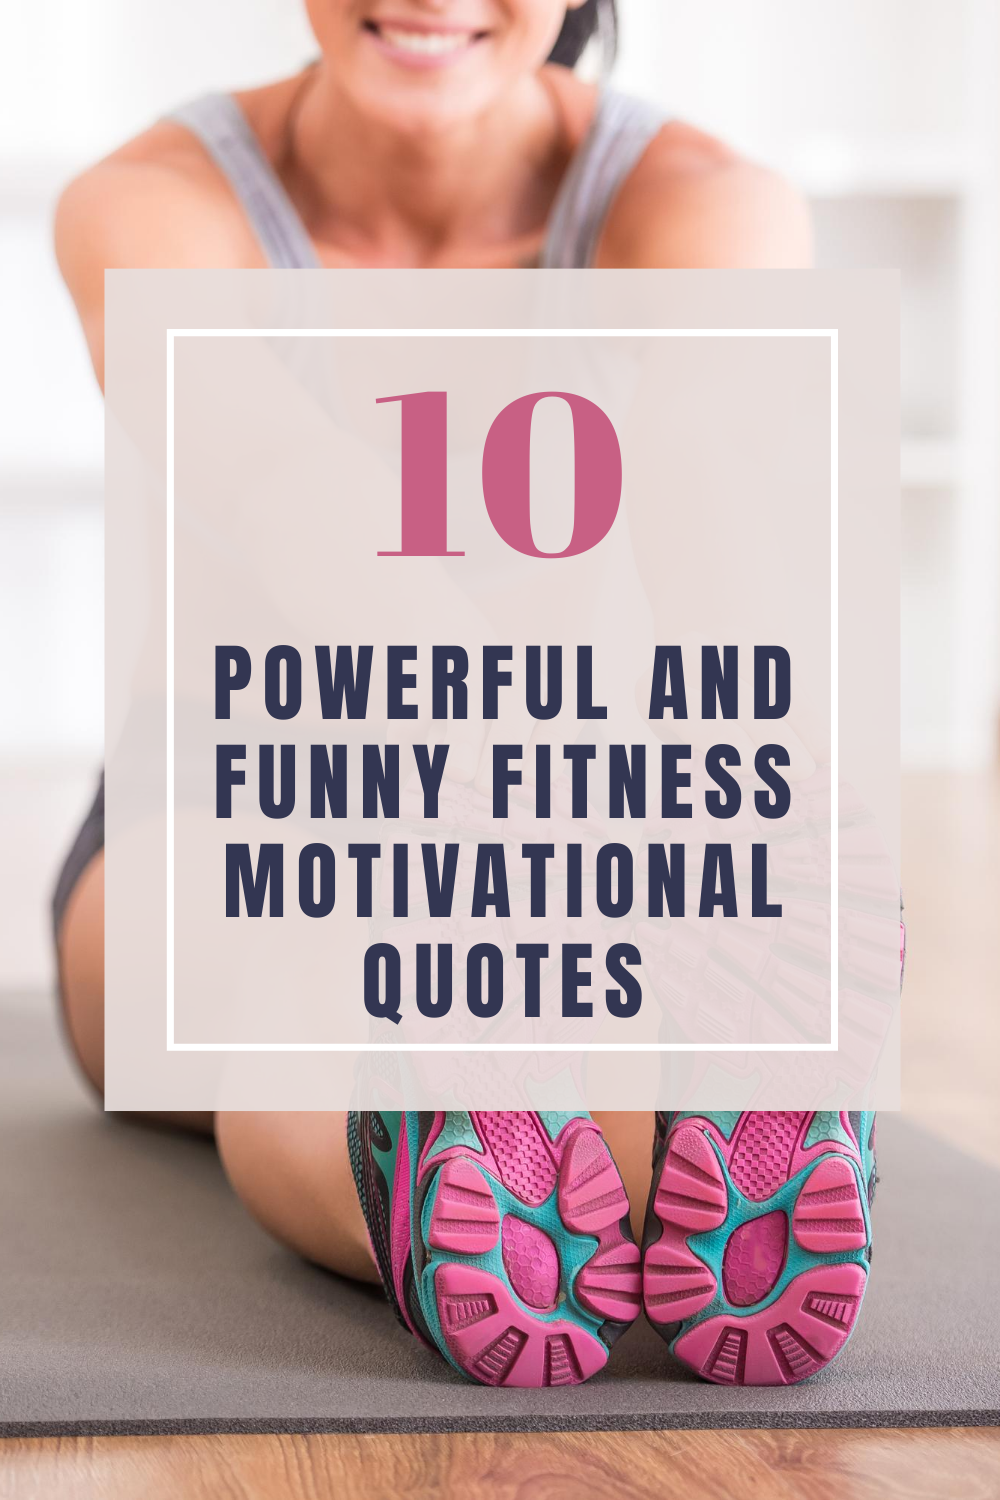 10 Powerful And Funny Fitness Motivational Quotes For Women